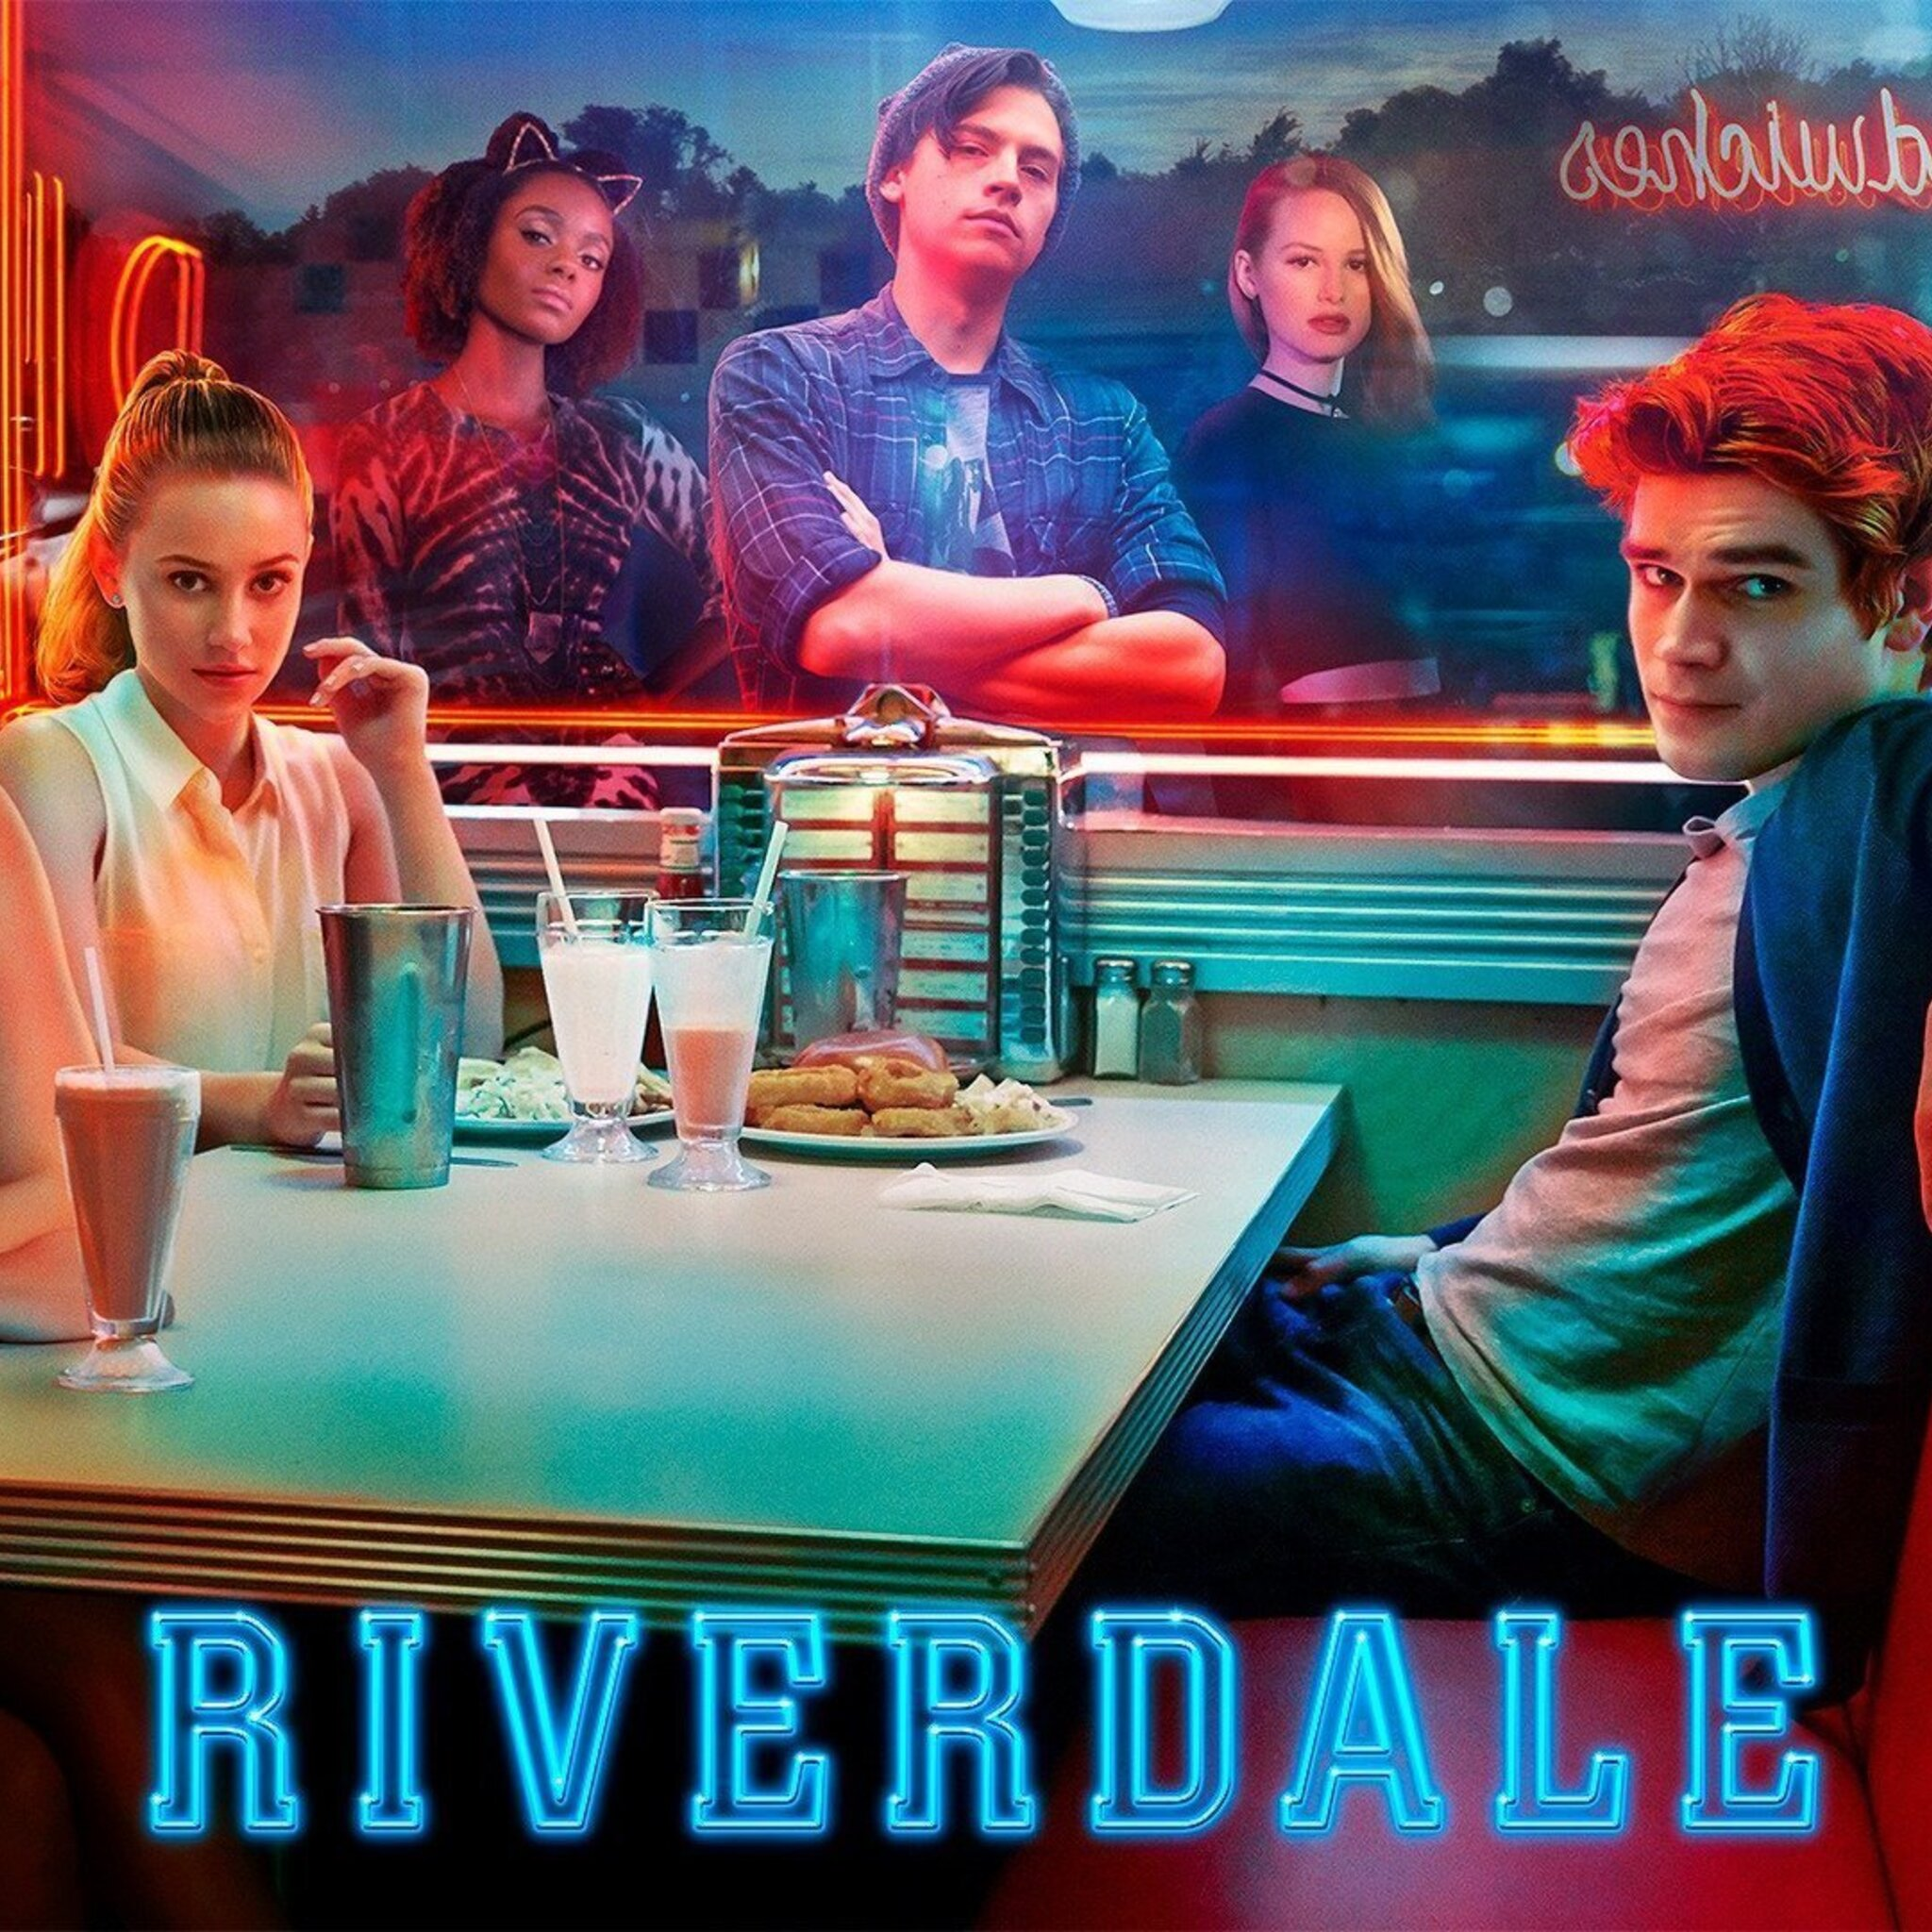 2048x2048 Riverdale Tv Series Ipad Air HD 4k Wallpapers ...